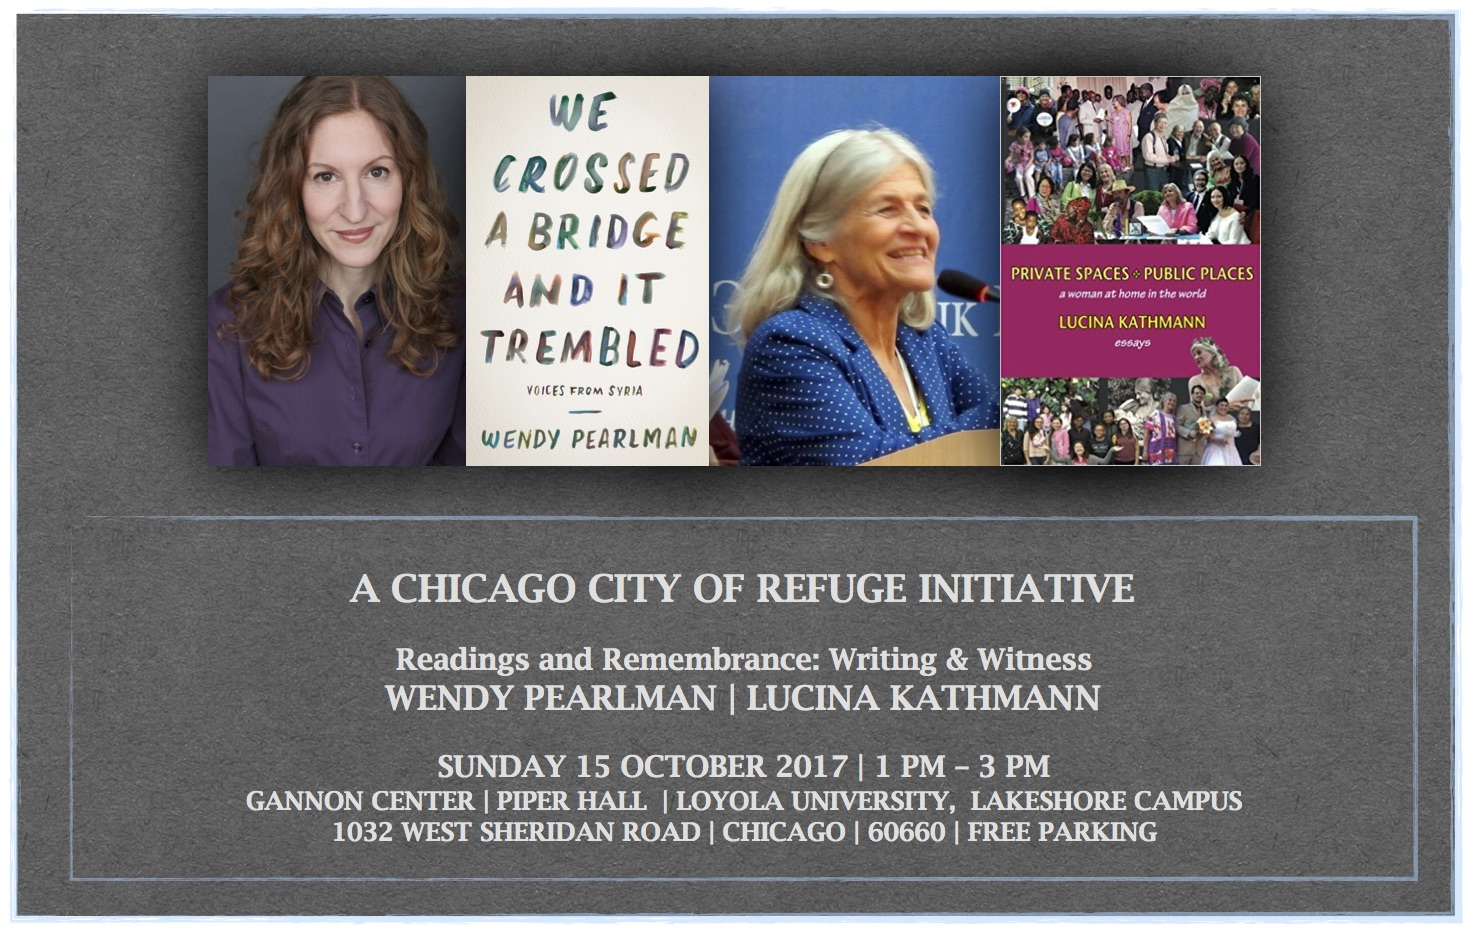 CHICAGO CITY OF REFUGE INITIATIVE Readings and Remembrance, Oct 15th